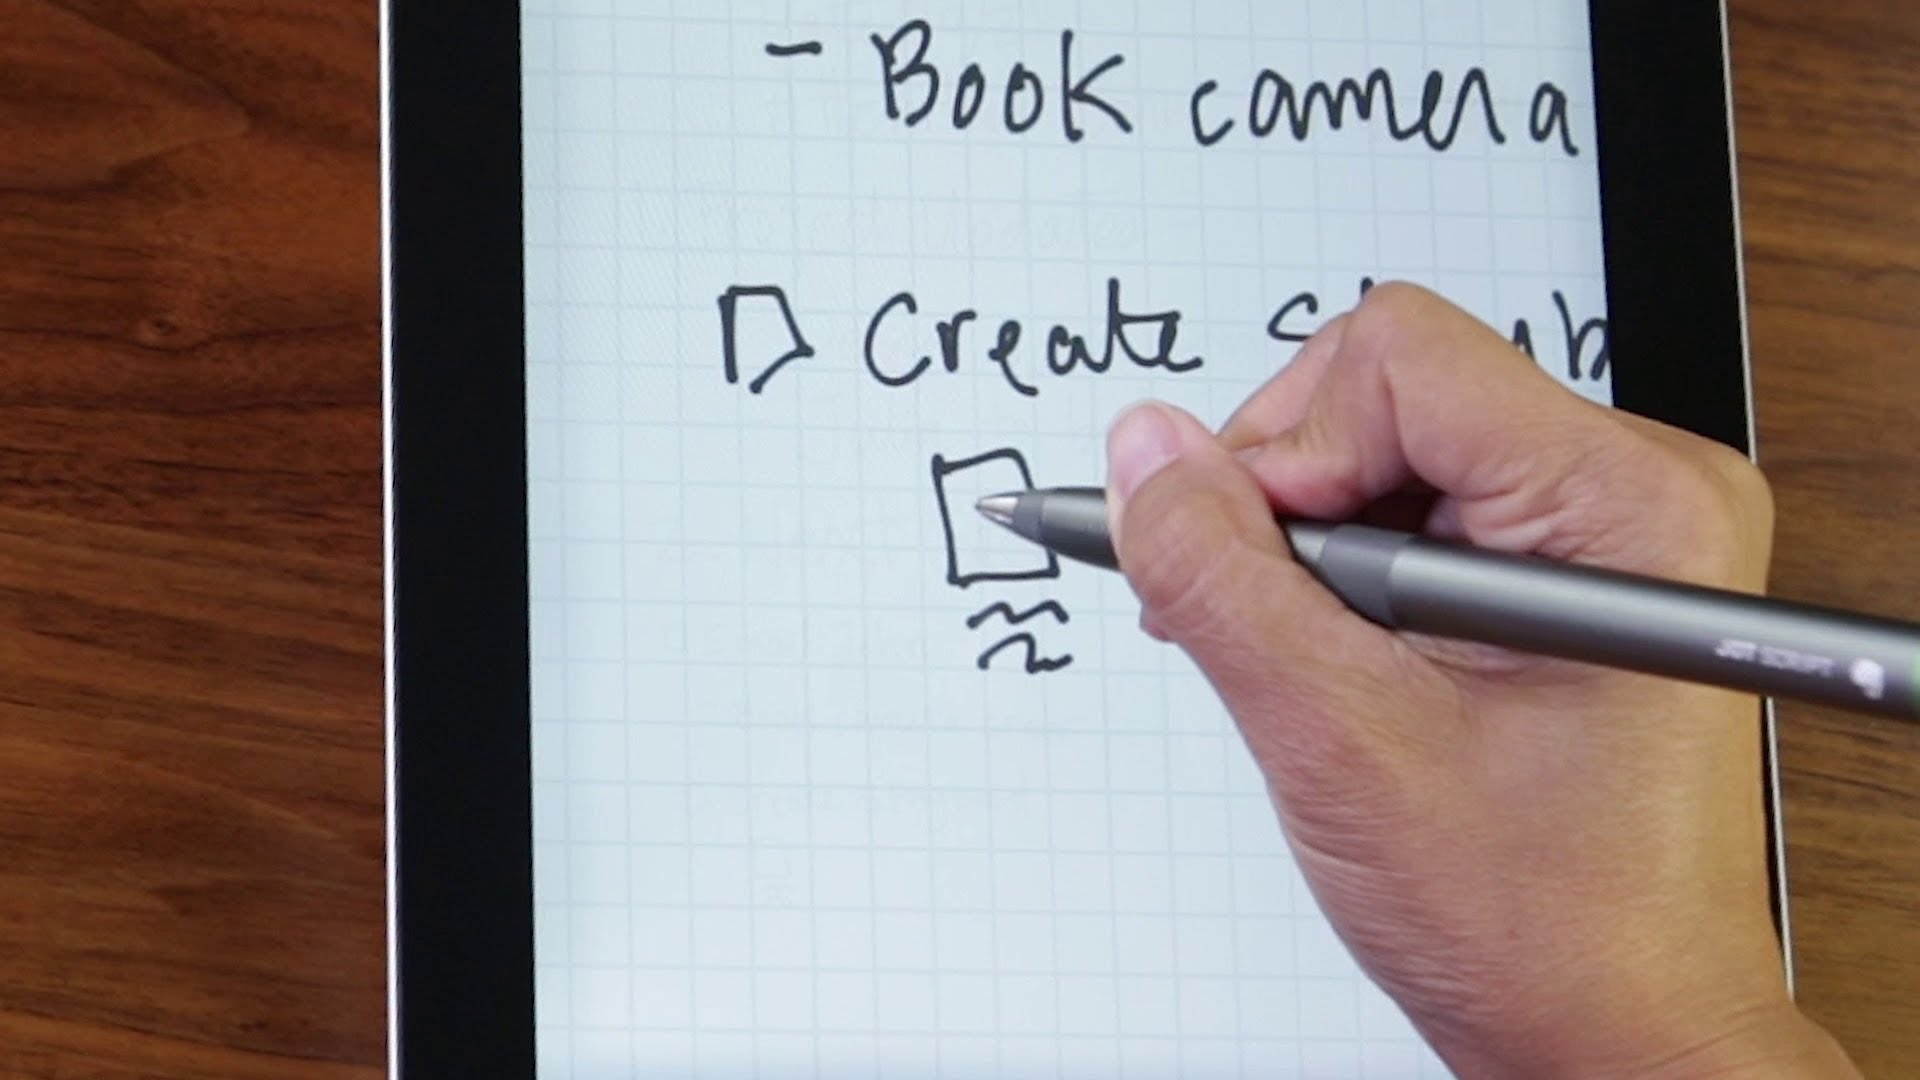 Adonit releases a new edition of its amazing Jot Script note-taking stylus